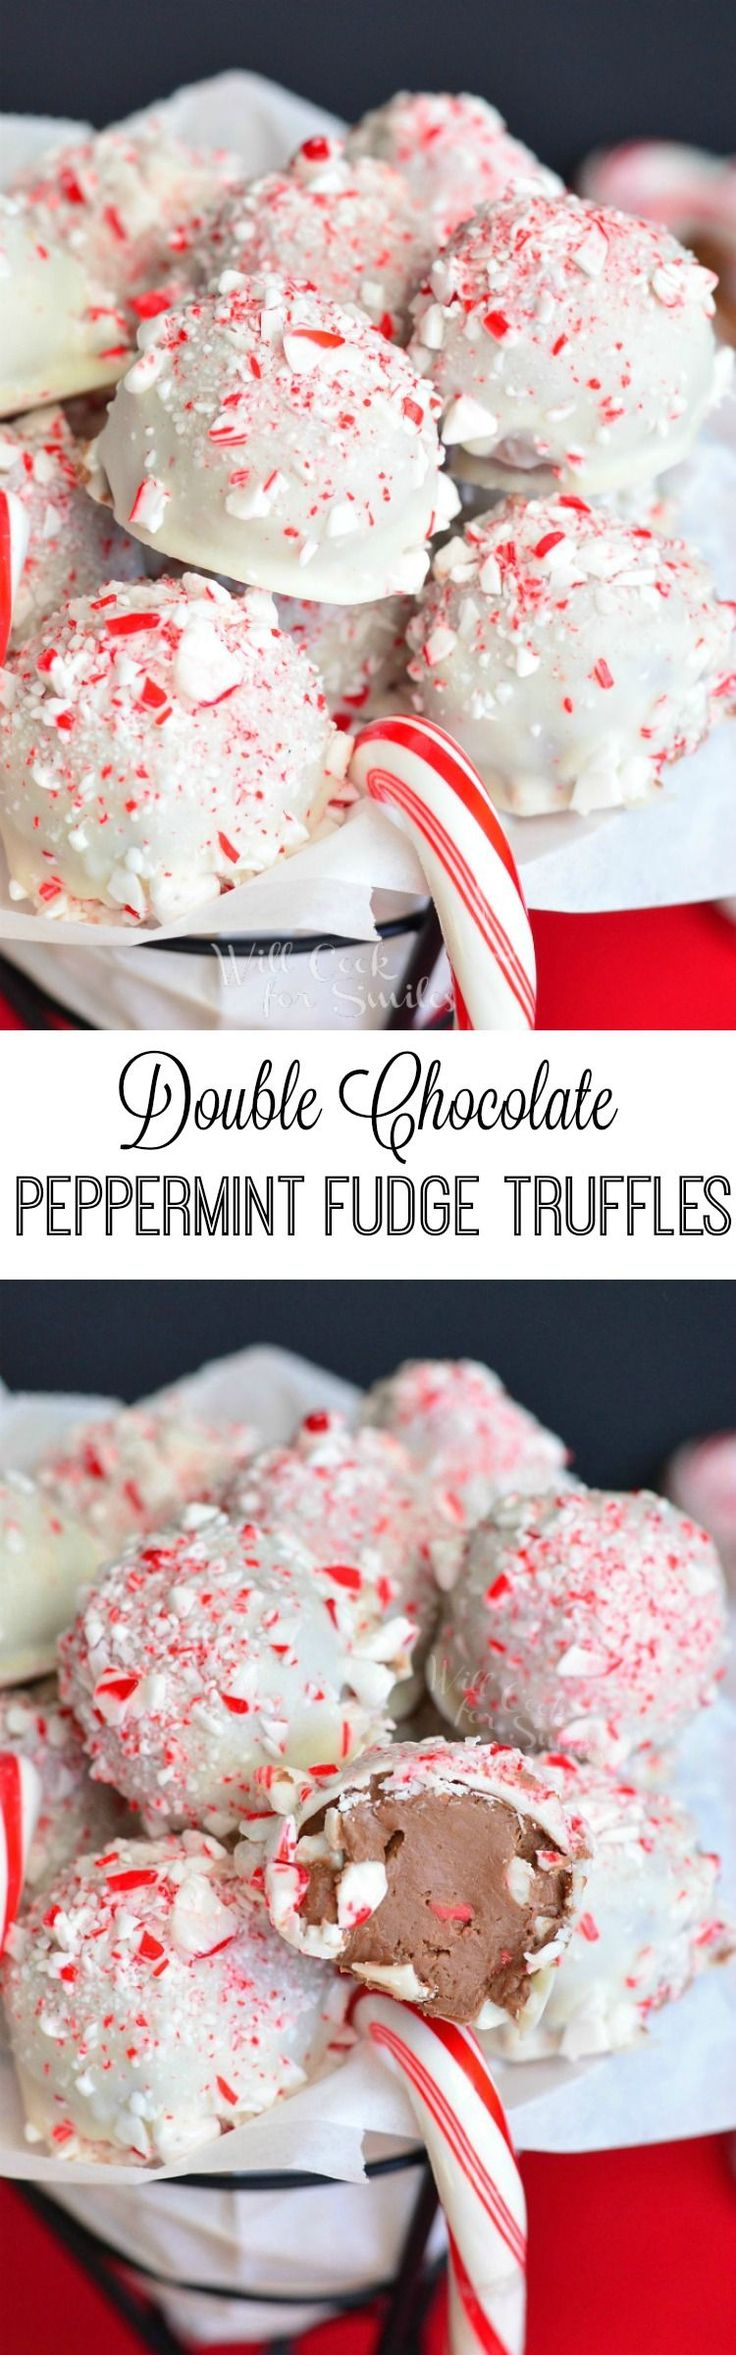 Double Chocolate Peppermint Fudge Truffles. Soft fudge, crunchy peppermint, and smooth, sweet chocolate are all loaded into one delicious little truffle. (Christmas Recipes Chocolate)